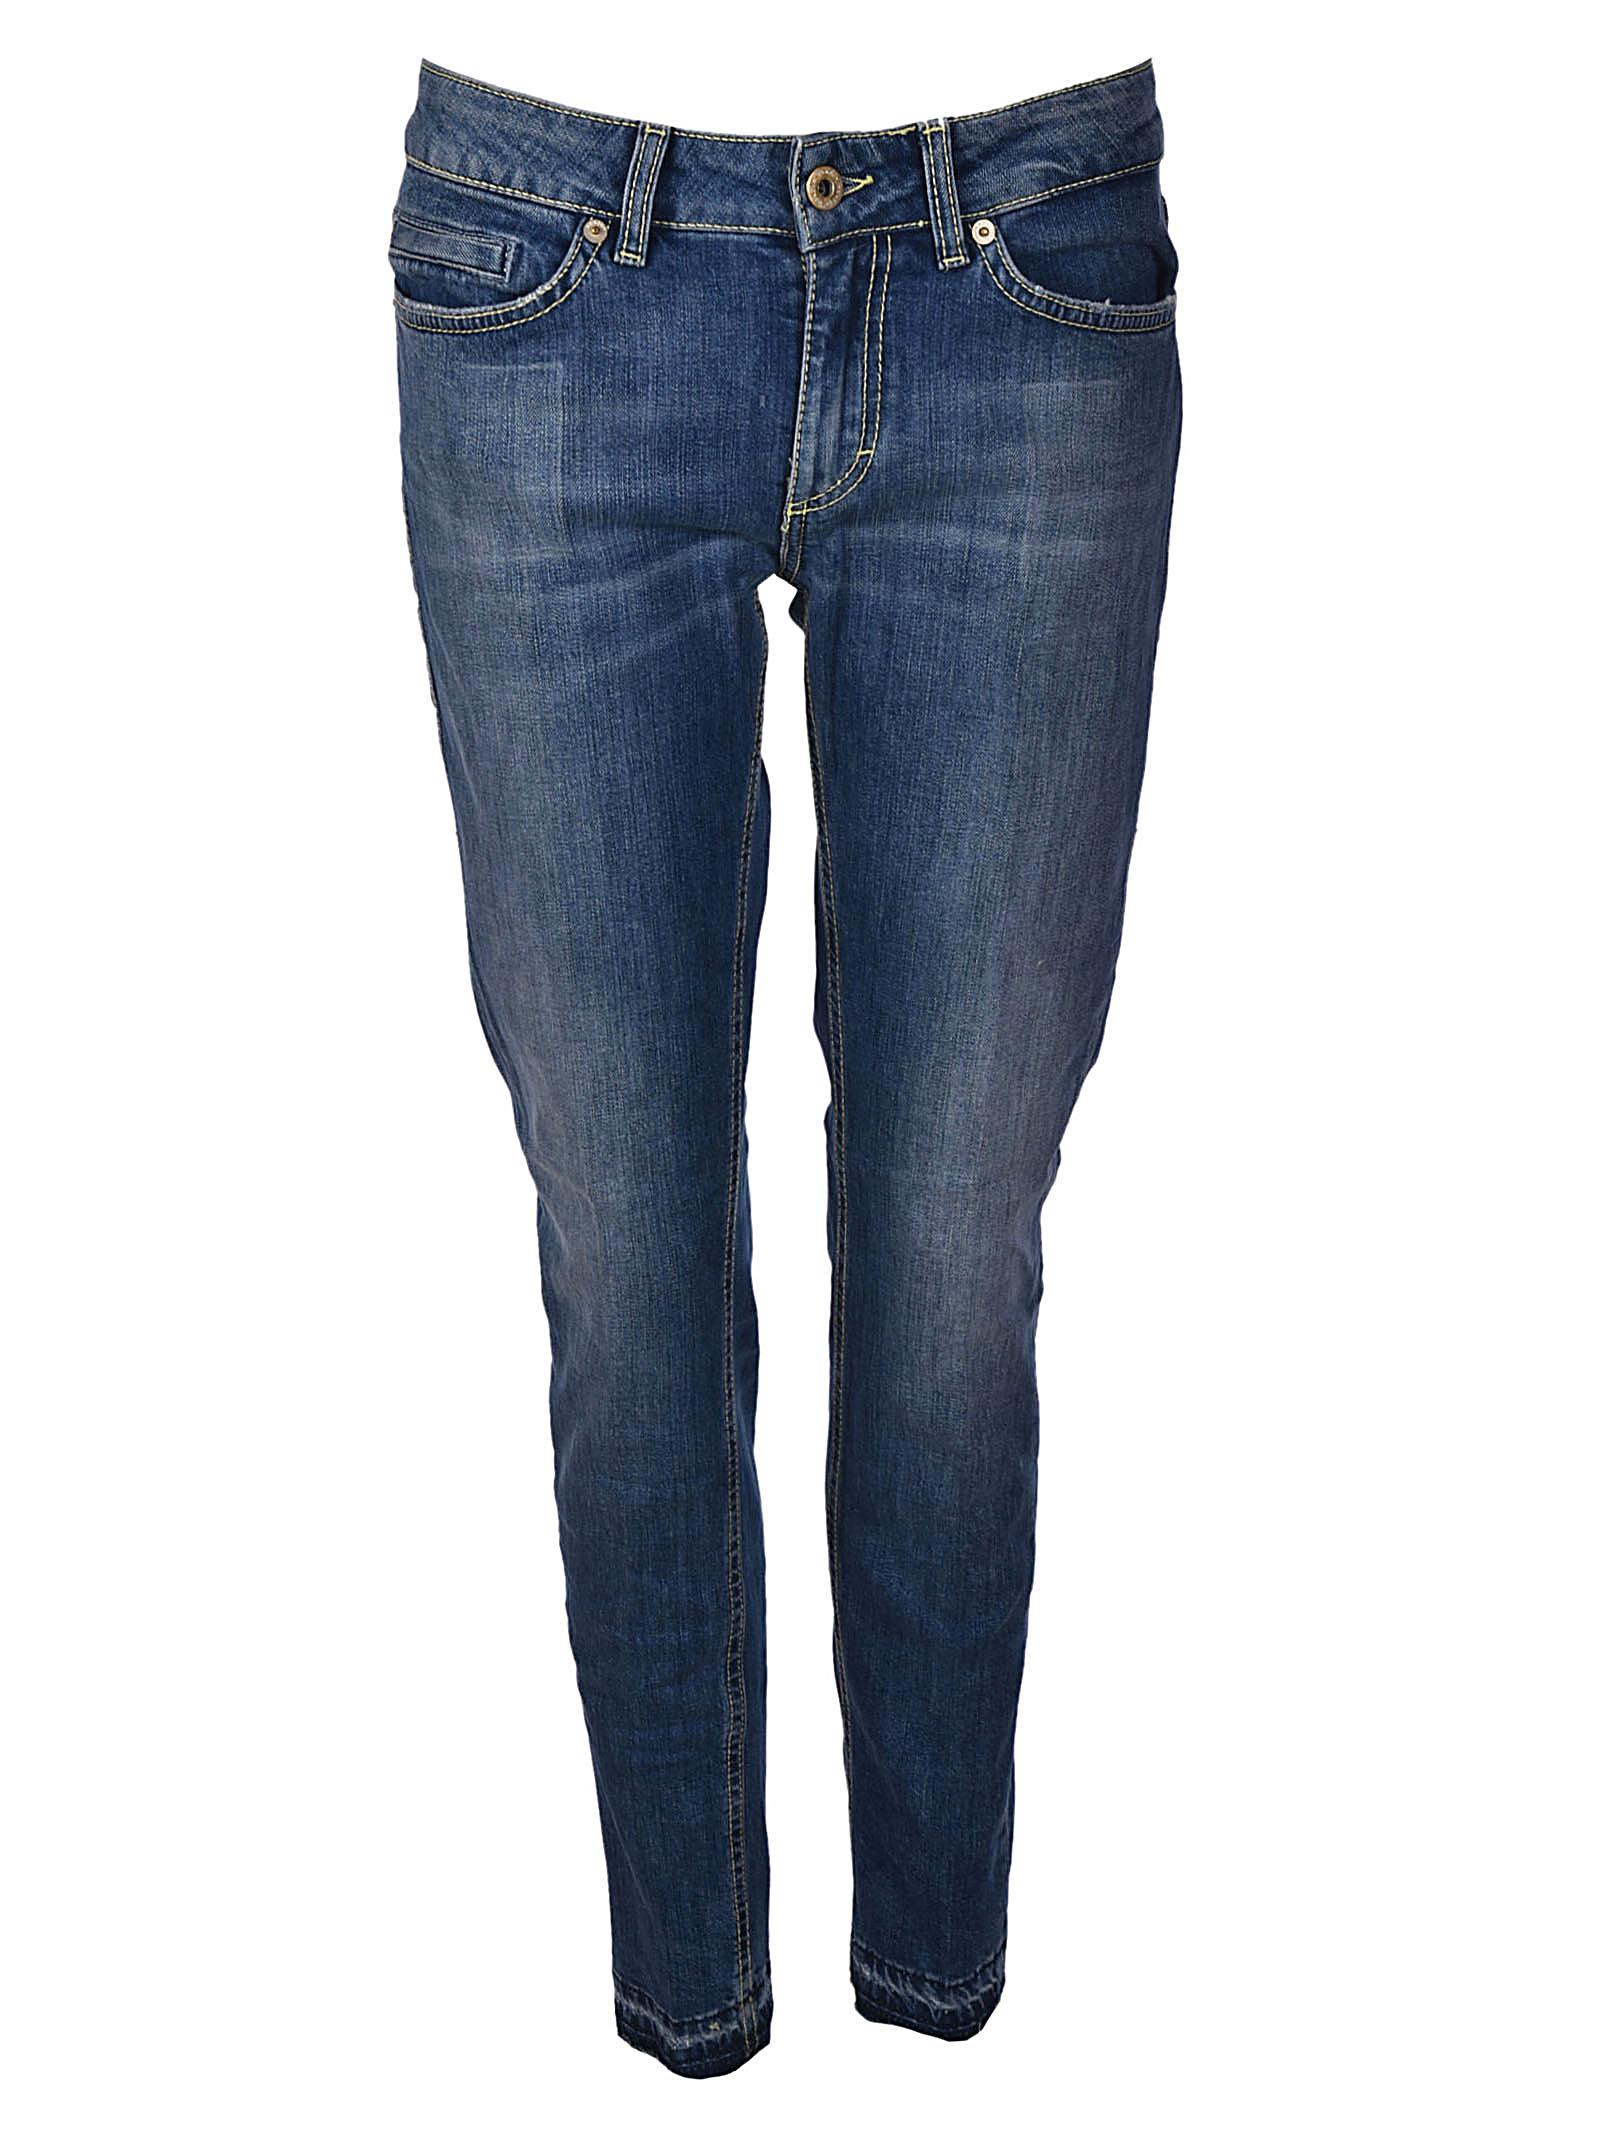 Gaynor low rise skinny jeans